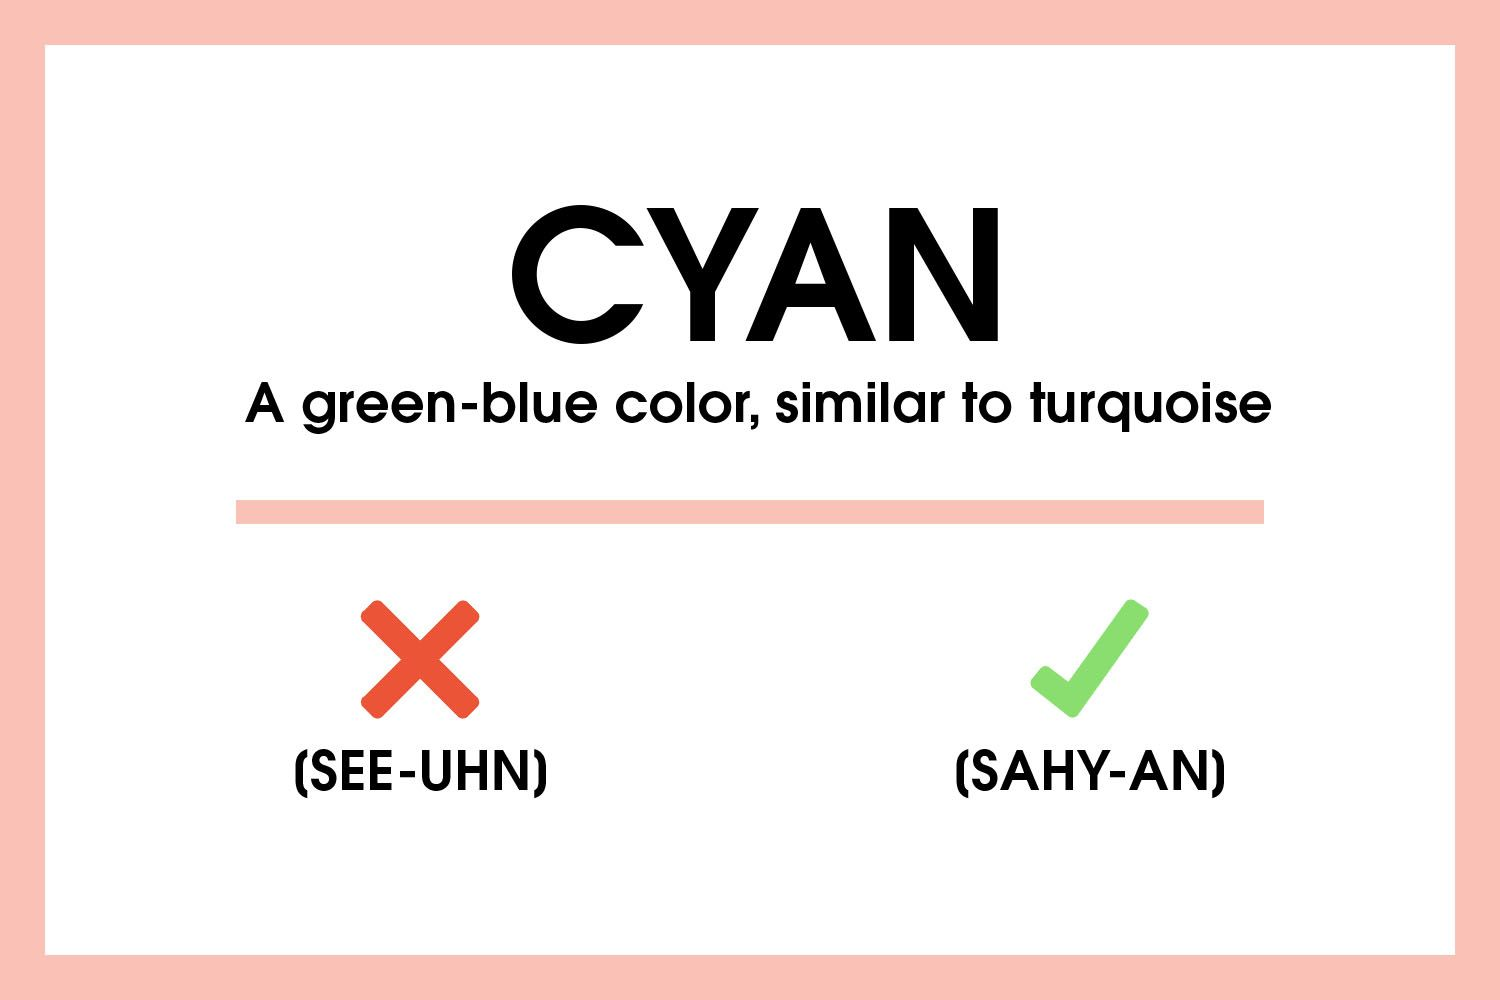 9 Design Words And How To Pronounce Them - Commonly Mispronounced